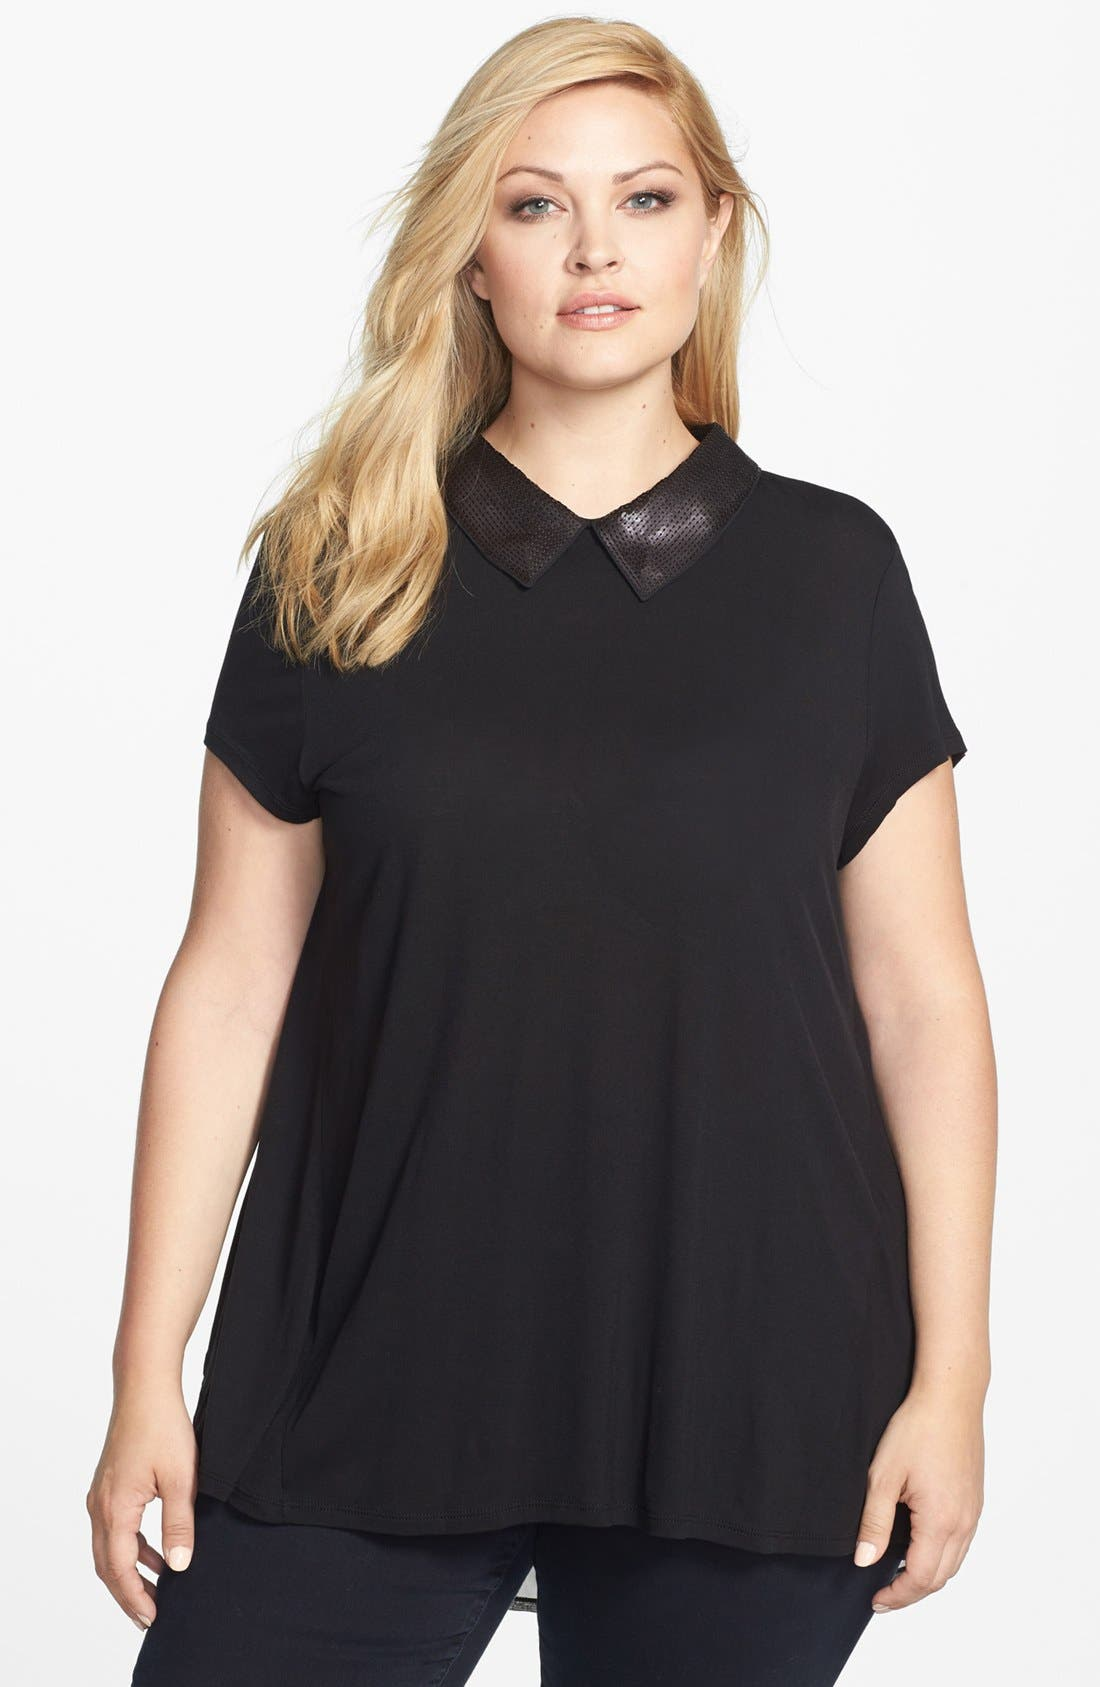 Alternate Image 1 Selected - Kische Embellished Collar Mixed Media Tee (Plus Size)